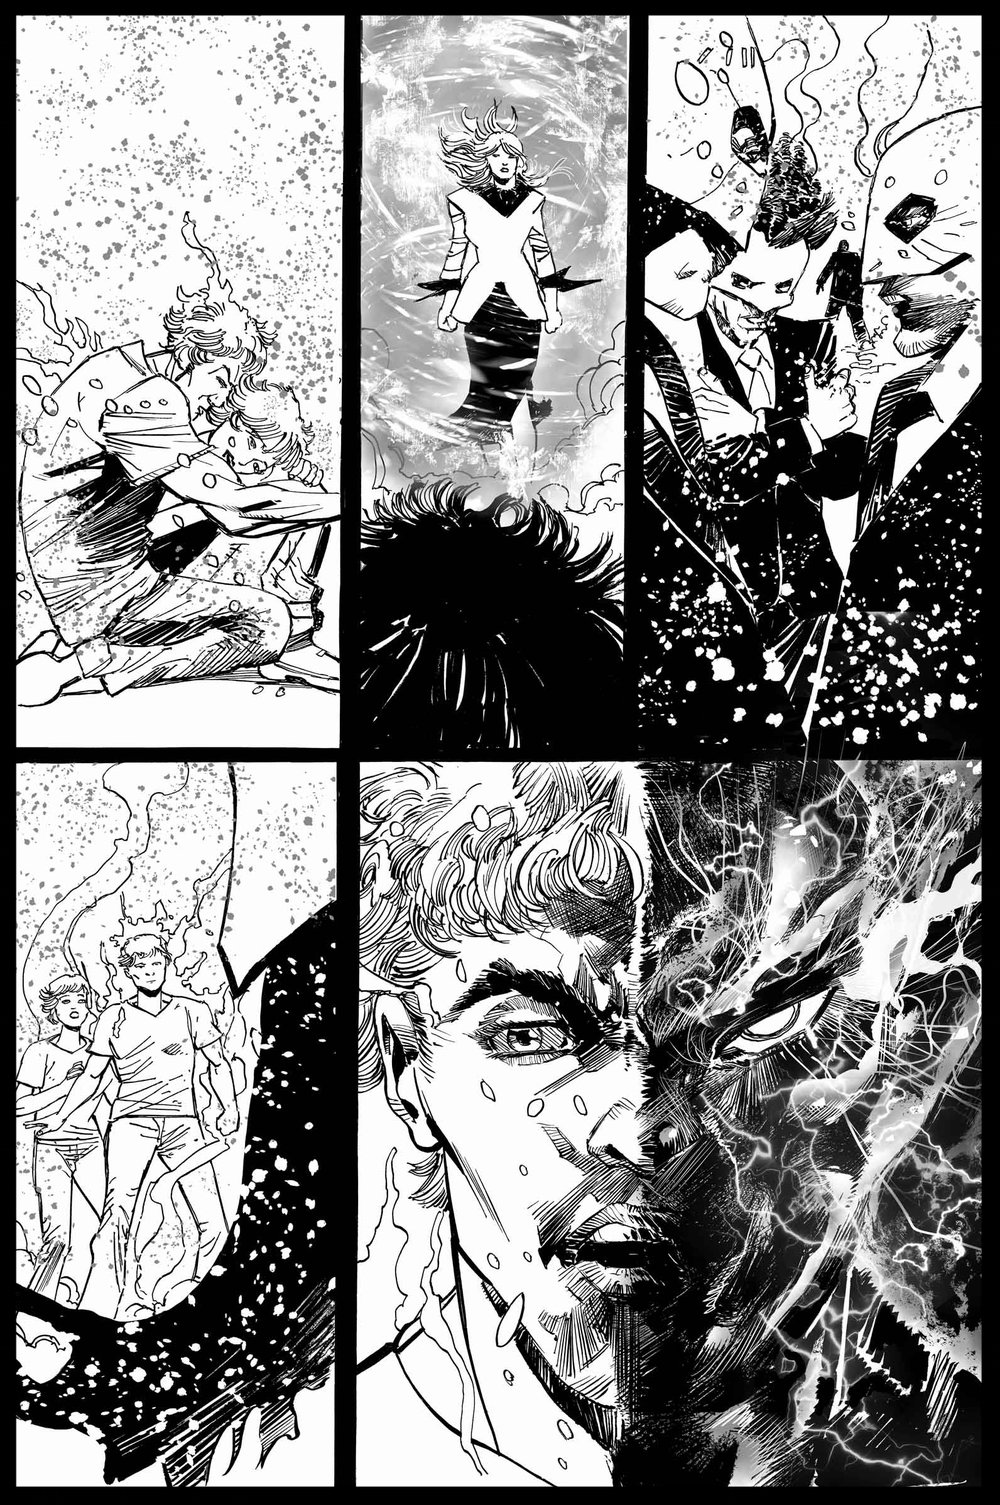 Brimstone #11 - Page 5 - Pencils & Inks